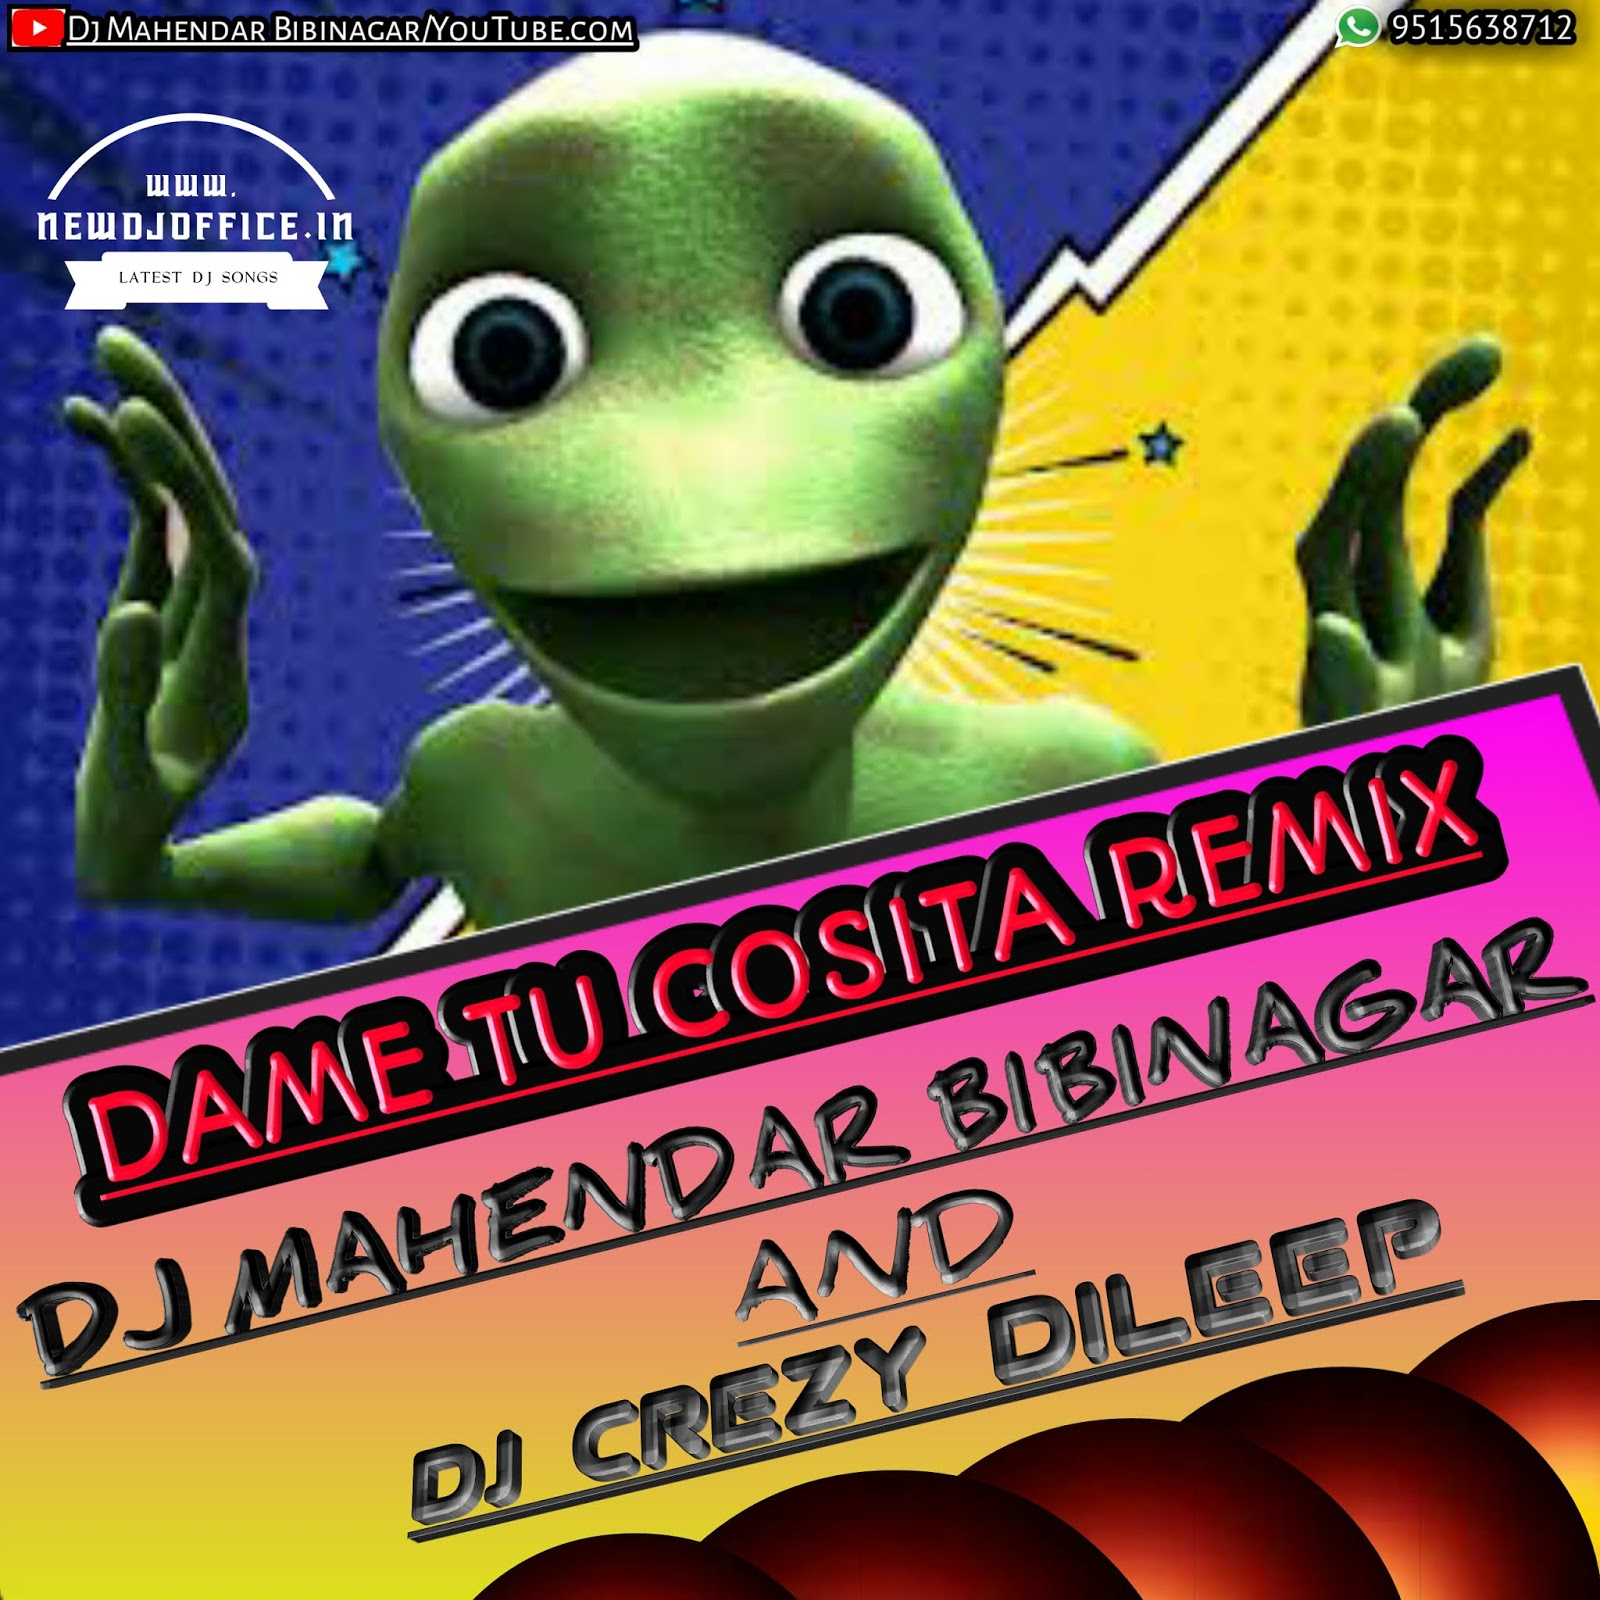 Dame tu cosita song download mp3 naa songs | Dame Tu Cosita